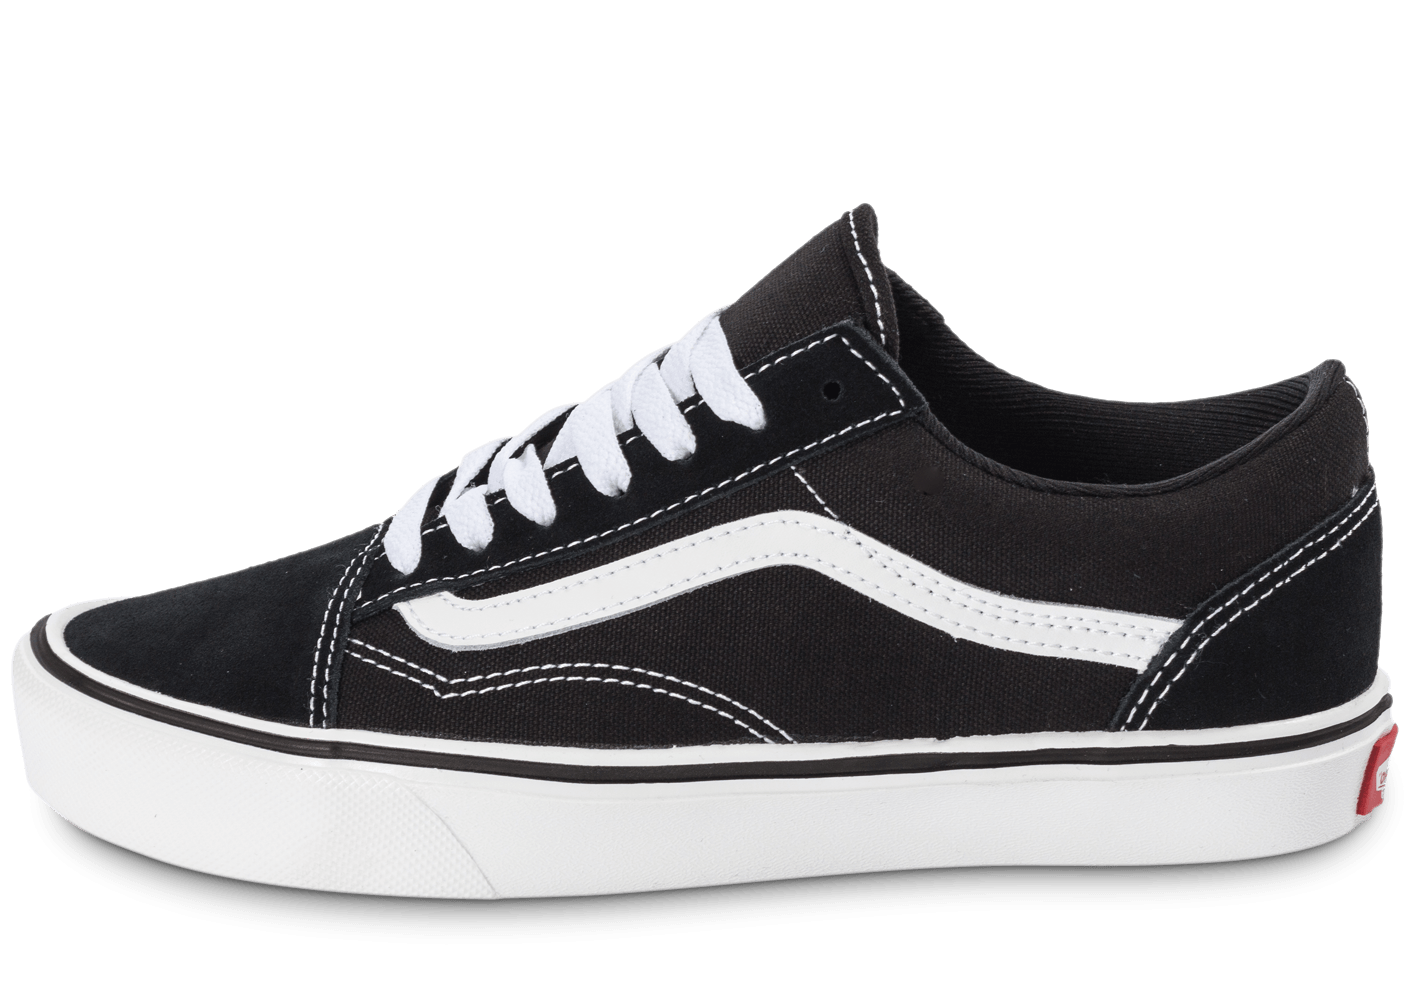 vans old skool noire et blanche chaussures chaussures. Black Bedroom Furniture Sets. Home Design Ideas